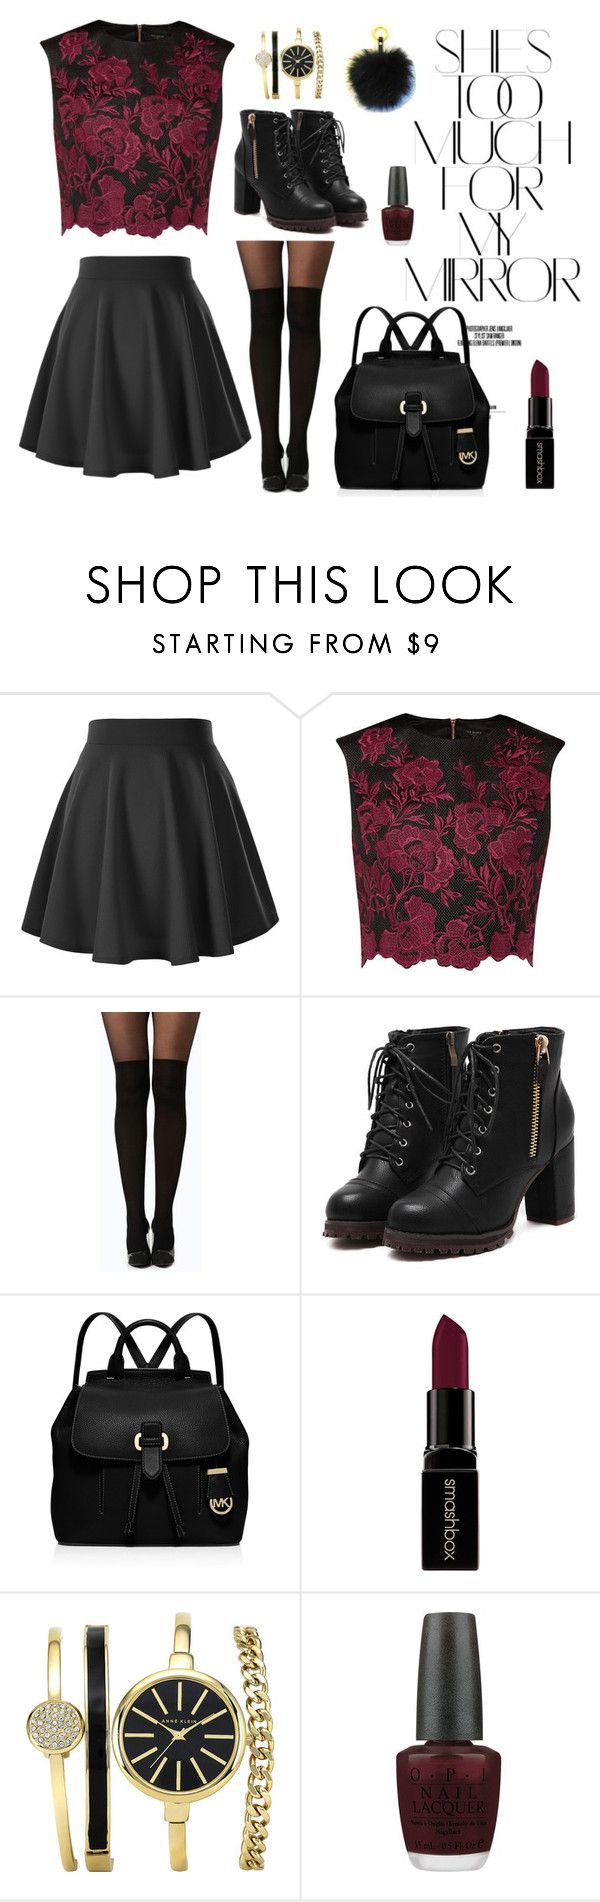 She's too much for the mirror by shop-styleloft on Polyvore featuring Ted Baker, Boohoo, Michael Kors, Smashbox, OPI, styleloft and Rika